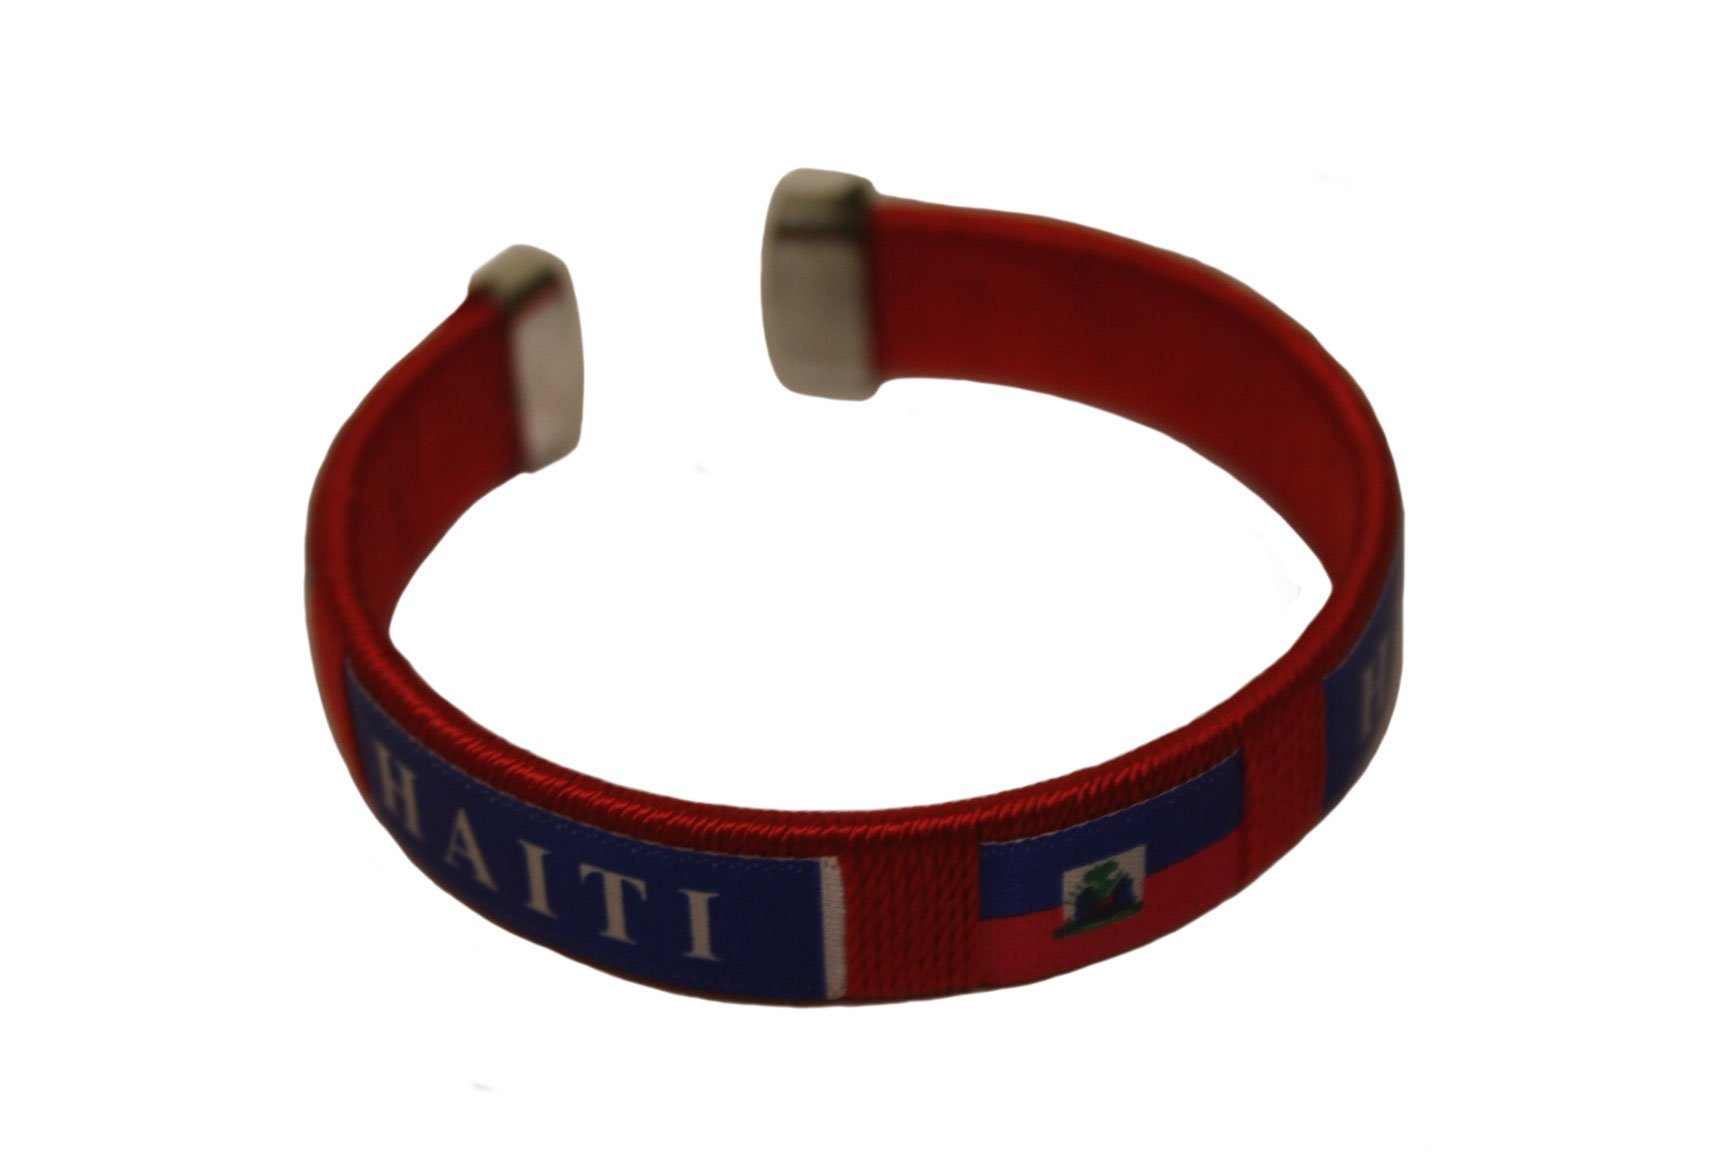 Haiti Red Country Flag Flexible Adult C Bracelet Wristband ... New by SUPERDAVVES SUPERSTORE (Image #1)